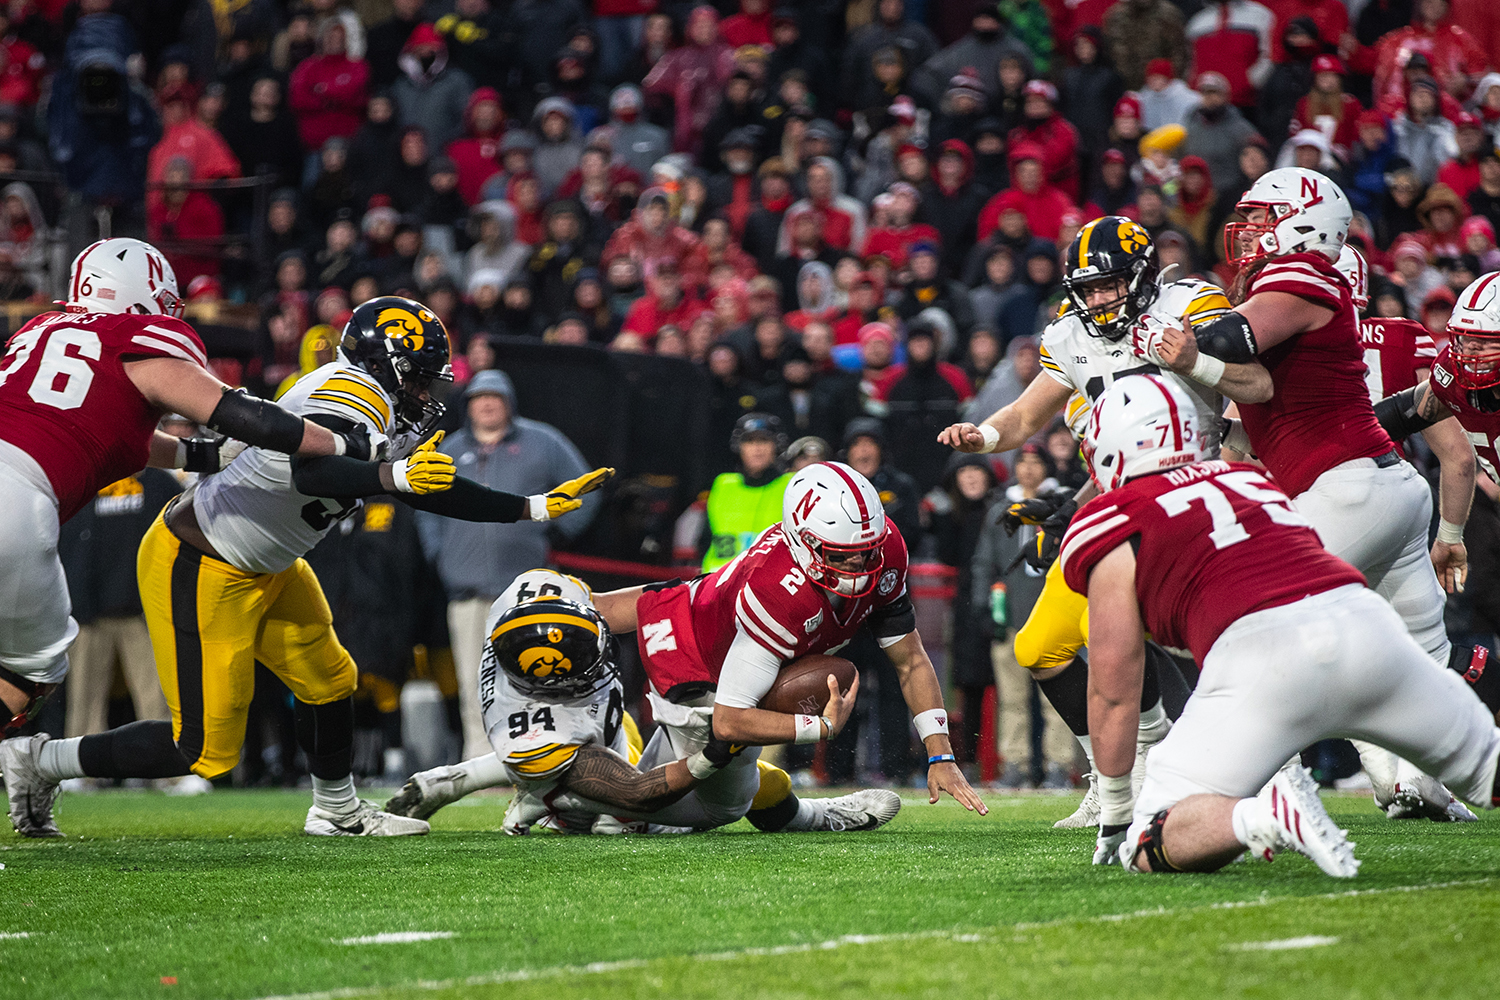 Nebraska quarter back Adrian Martinez is tackled by Iowa defensive end A.J. Epenesa during the game against Nebraska on Friday, November 29, 2019. Epenesa lead the Hawkeyes with nine solo tackles and five assisted. The Hawkeyes defeated the Corn Huskers 27-24.